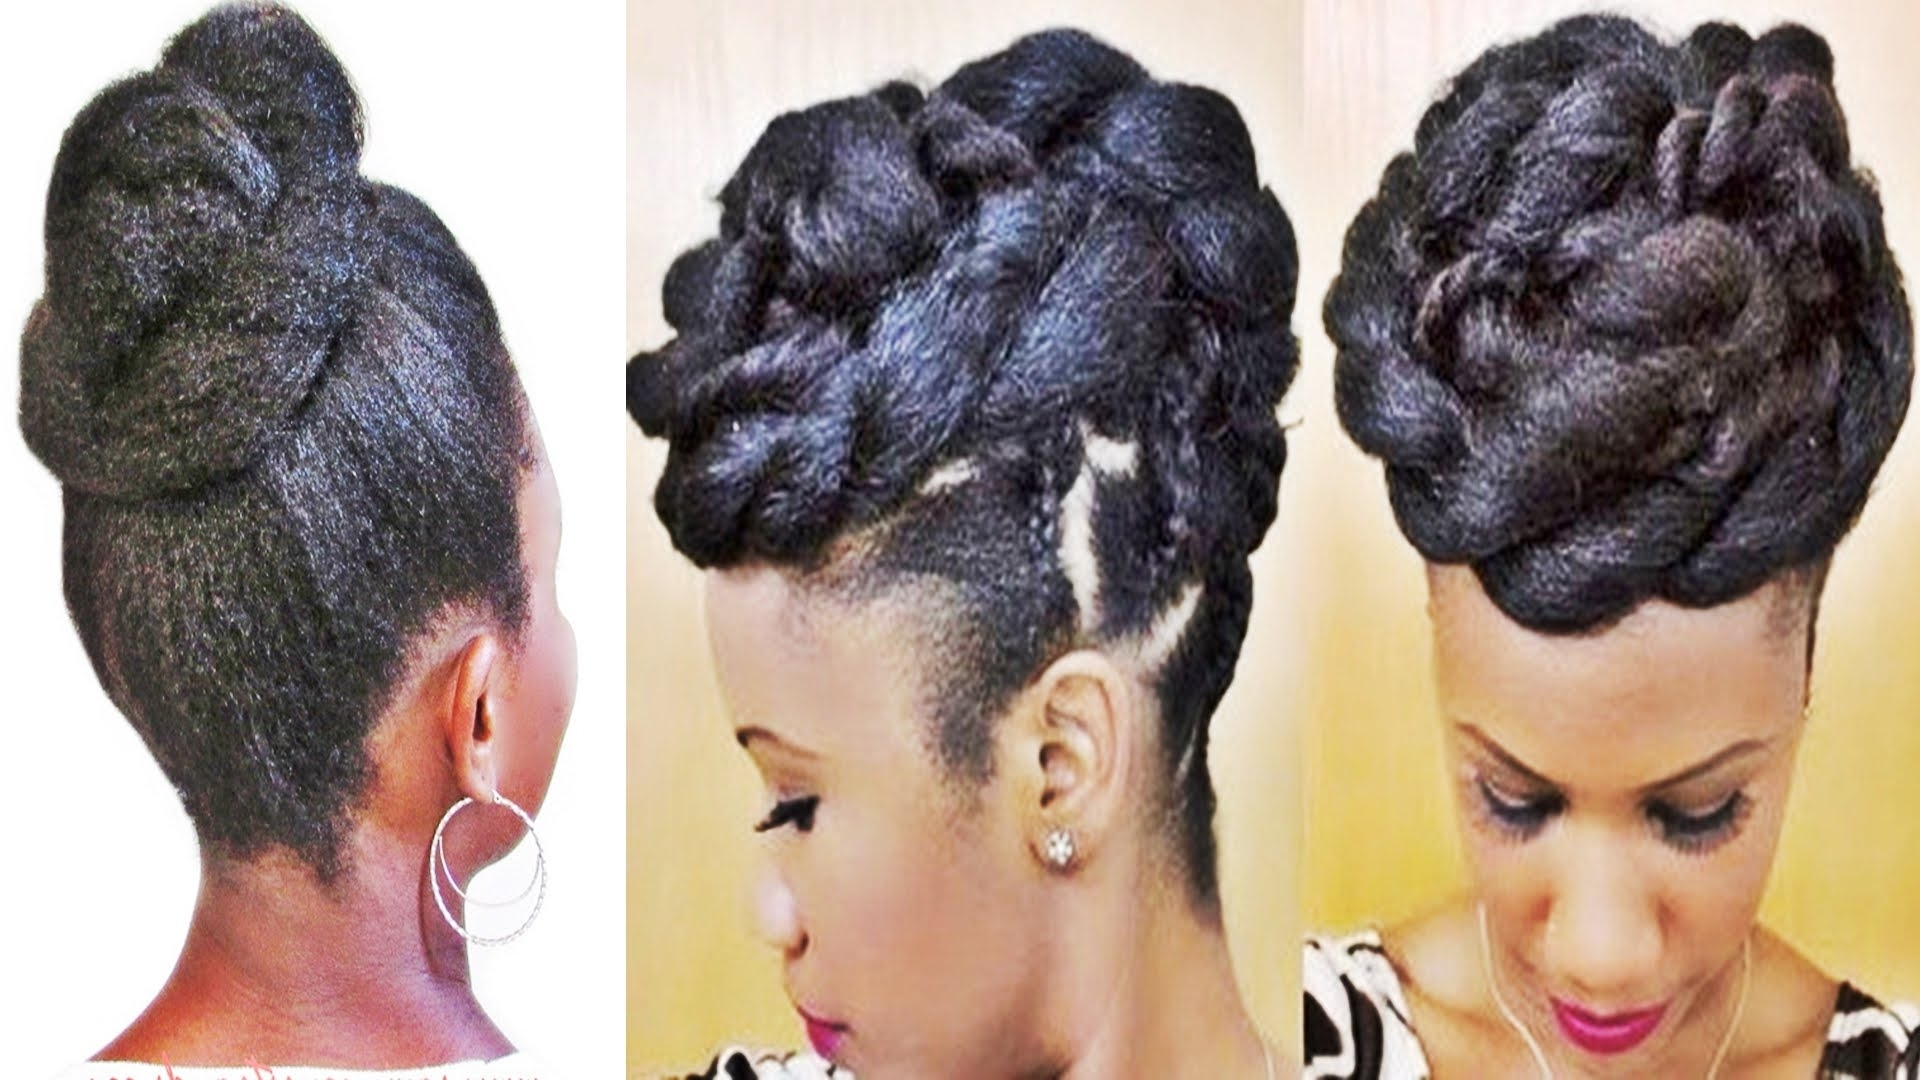 Braids And Twists Updo Hairstyle For Black Women – Youtube Intended For Braided Bun Updo African American Hairstyles (View 8 of 15)